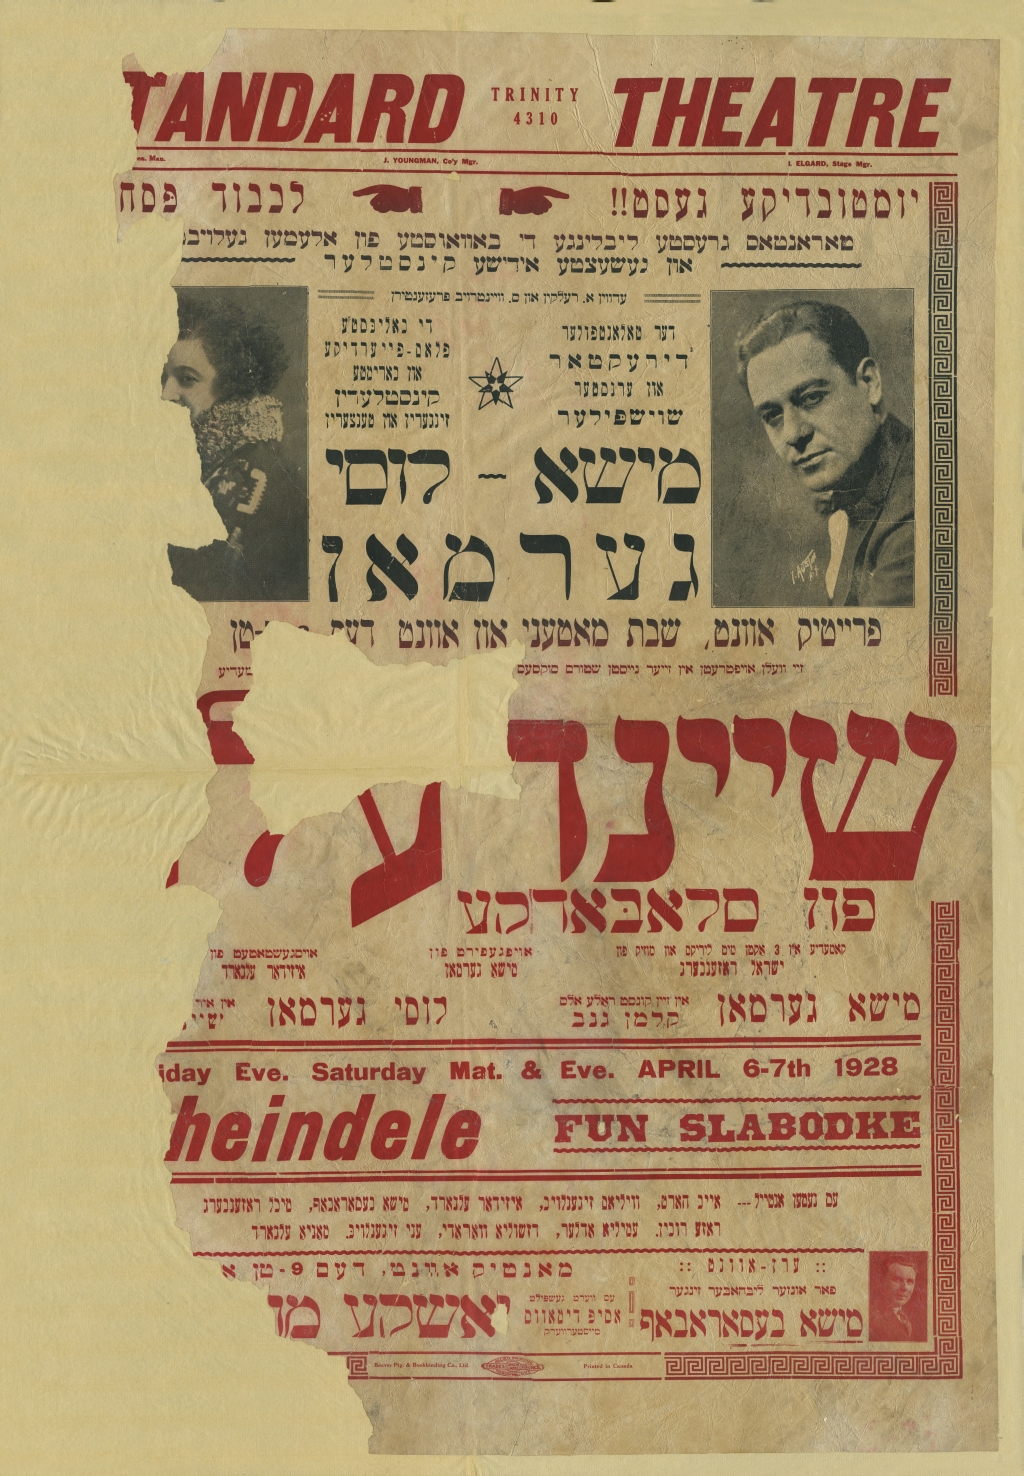 A promotional poster from 1928 for the play Sheindele from Slabodke, starring Mischa and Lucy German. This production was also known as Papirosen-makherin (Cigarette Maker) and Reizele from Slabodke. The poster is written in both English and Yiddish.   OJA, accession 1982-7-6.